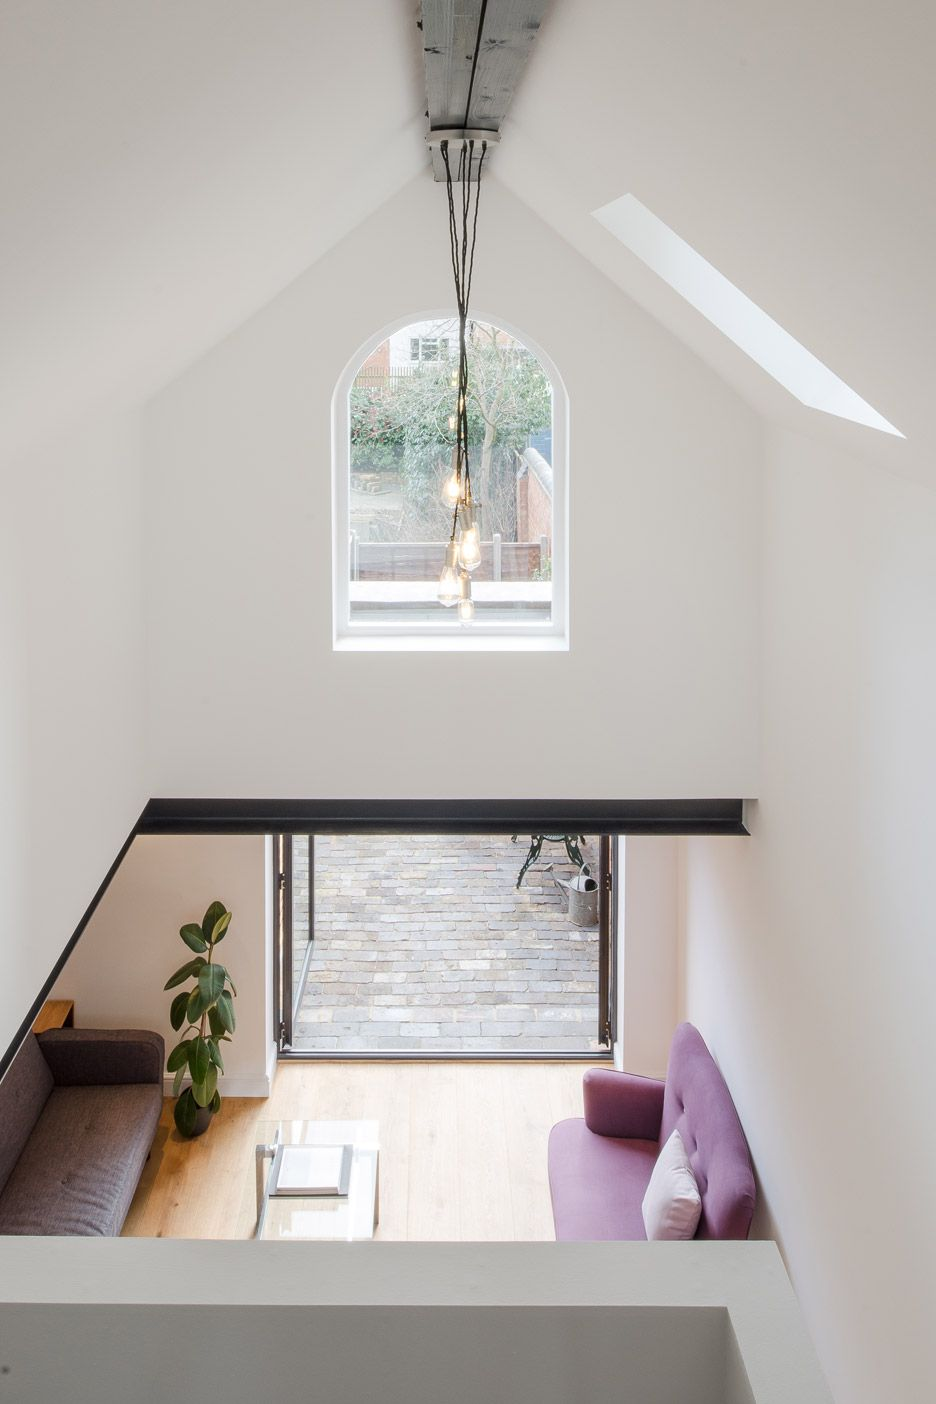 writers-coach-house-intervention-architecture-studio-renovation-moseley-birmingham-england_dezeen_936_7